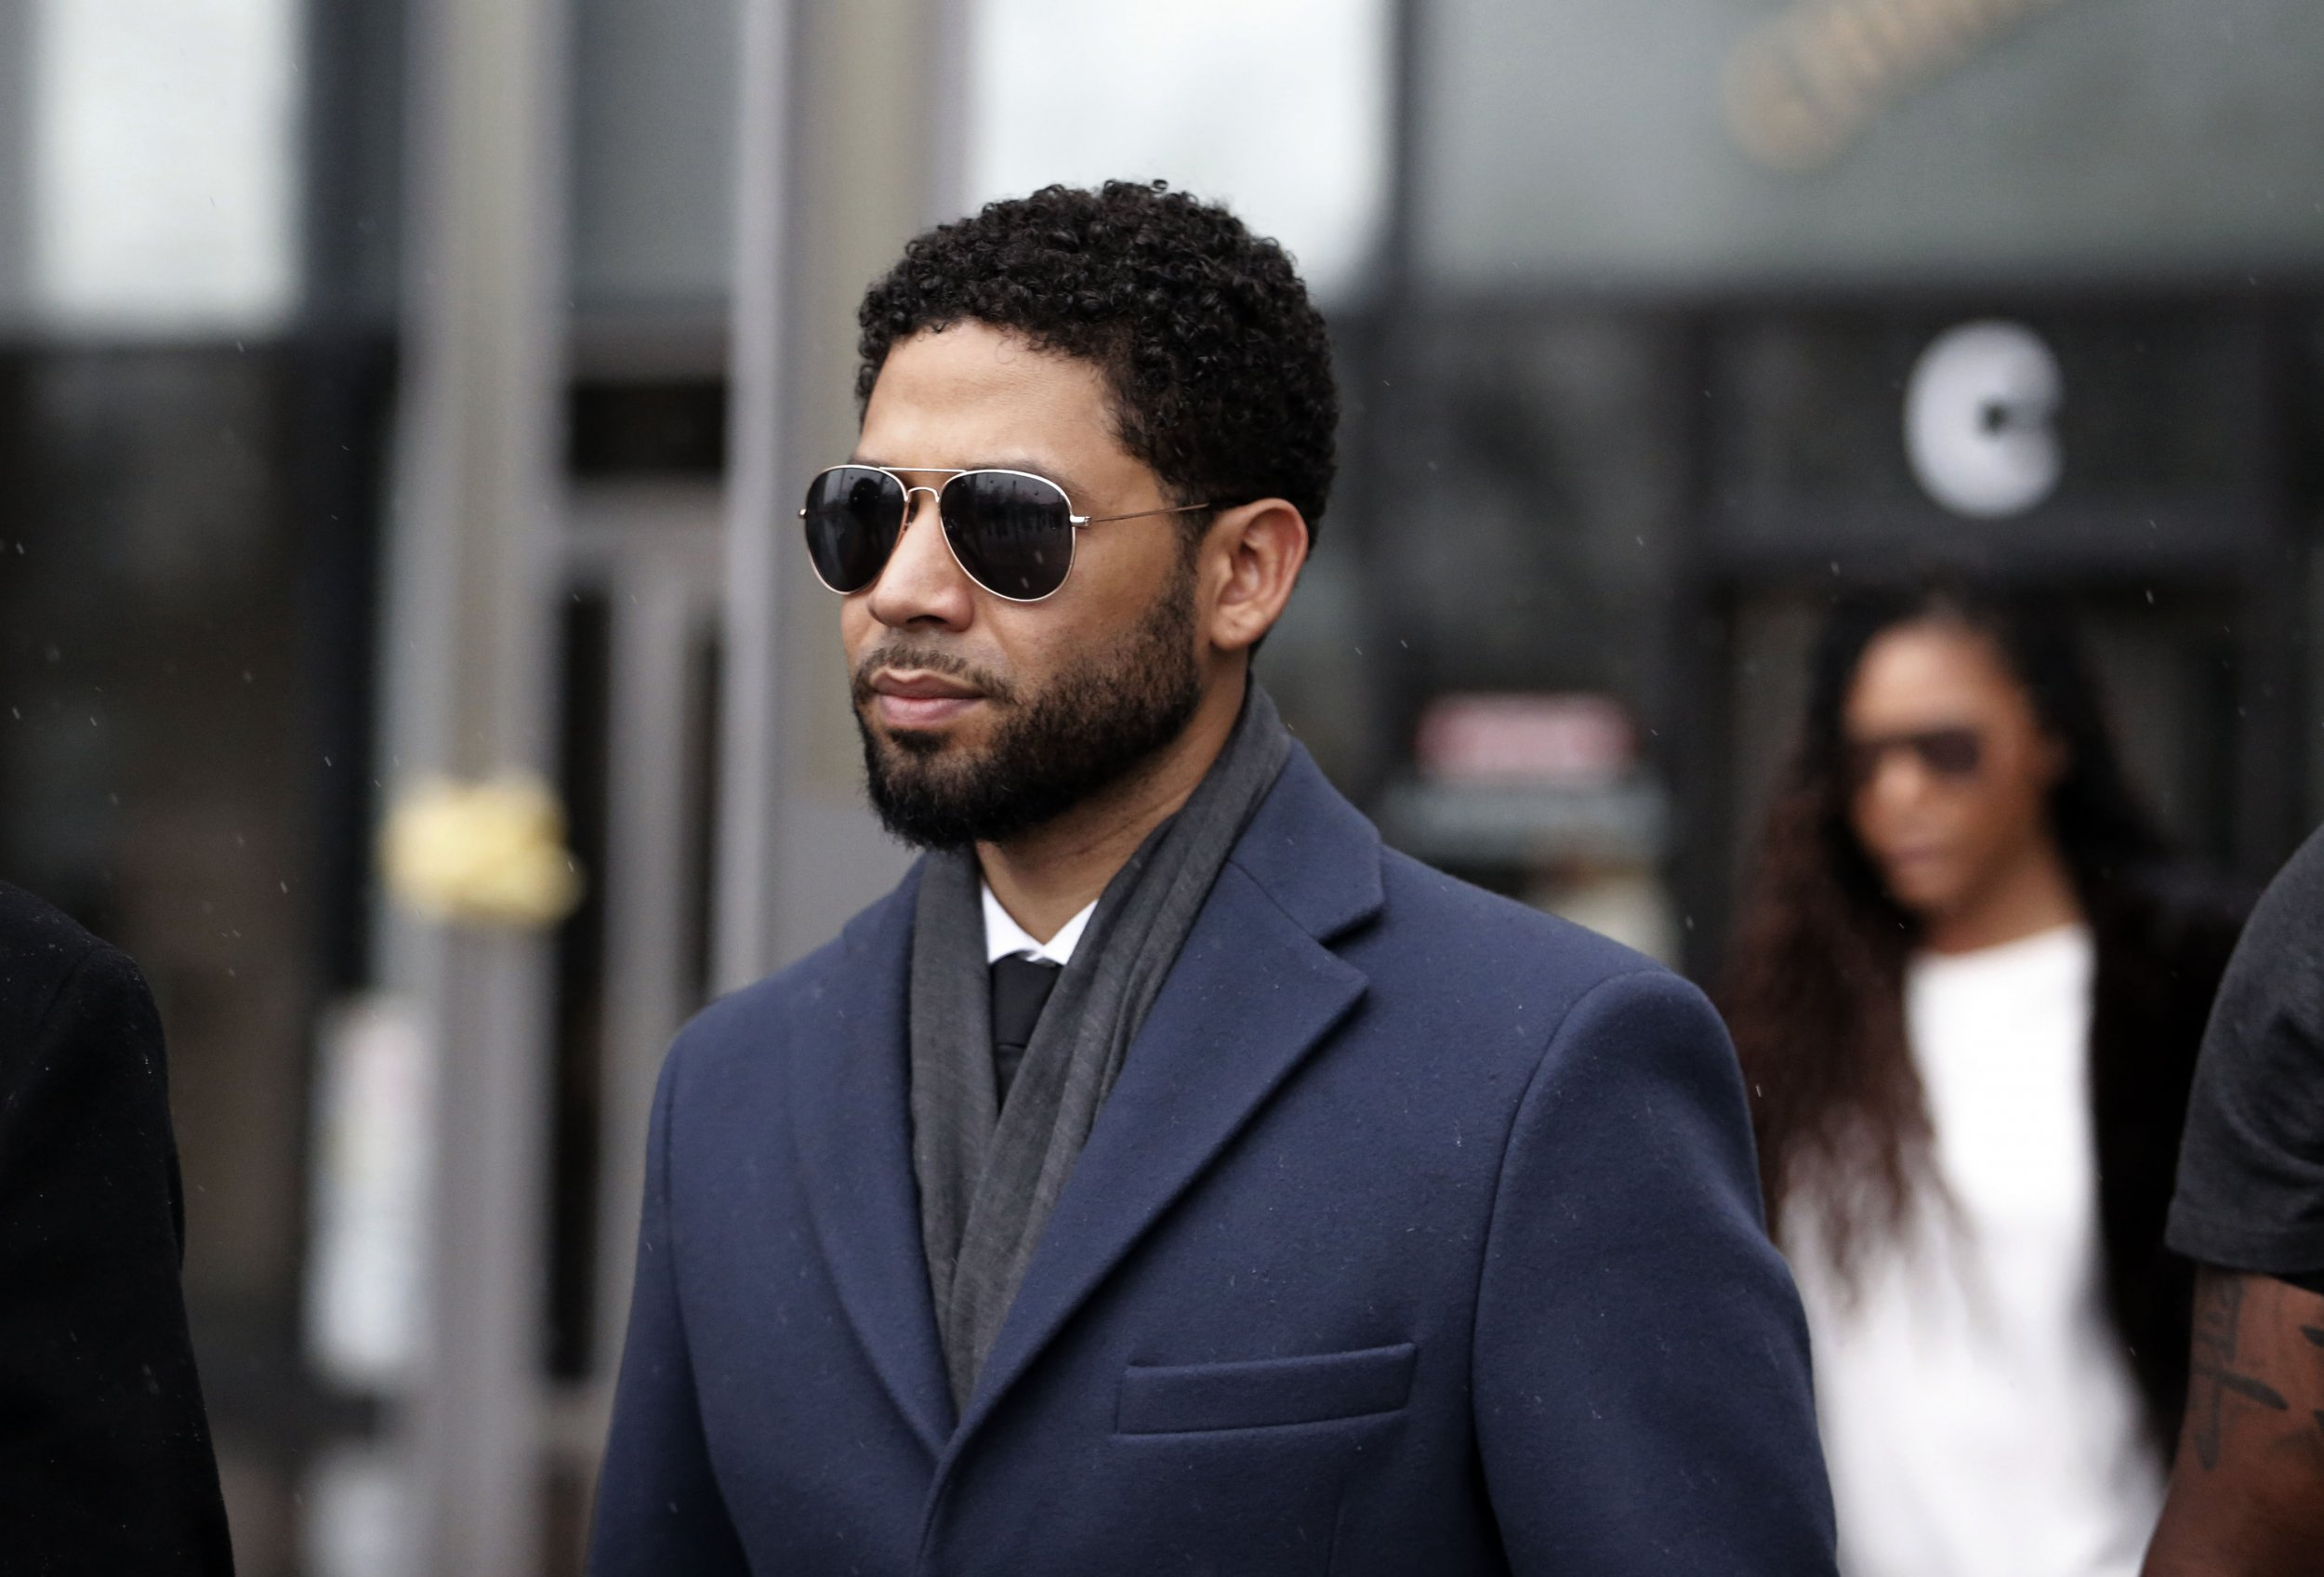 Jussie Smollett's attorney wants focus on role of brothers